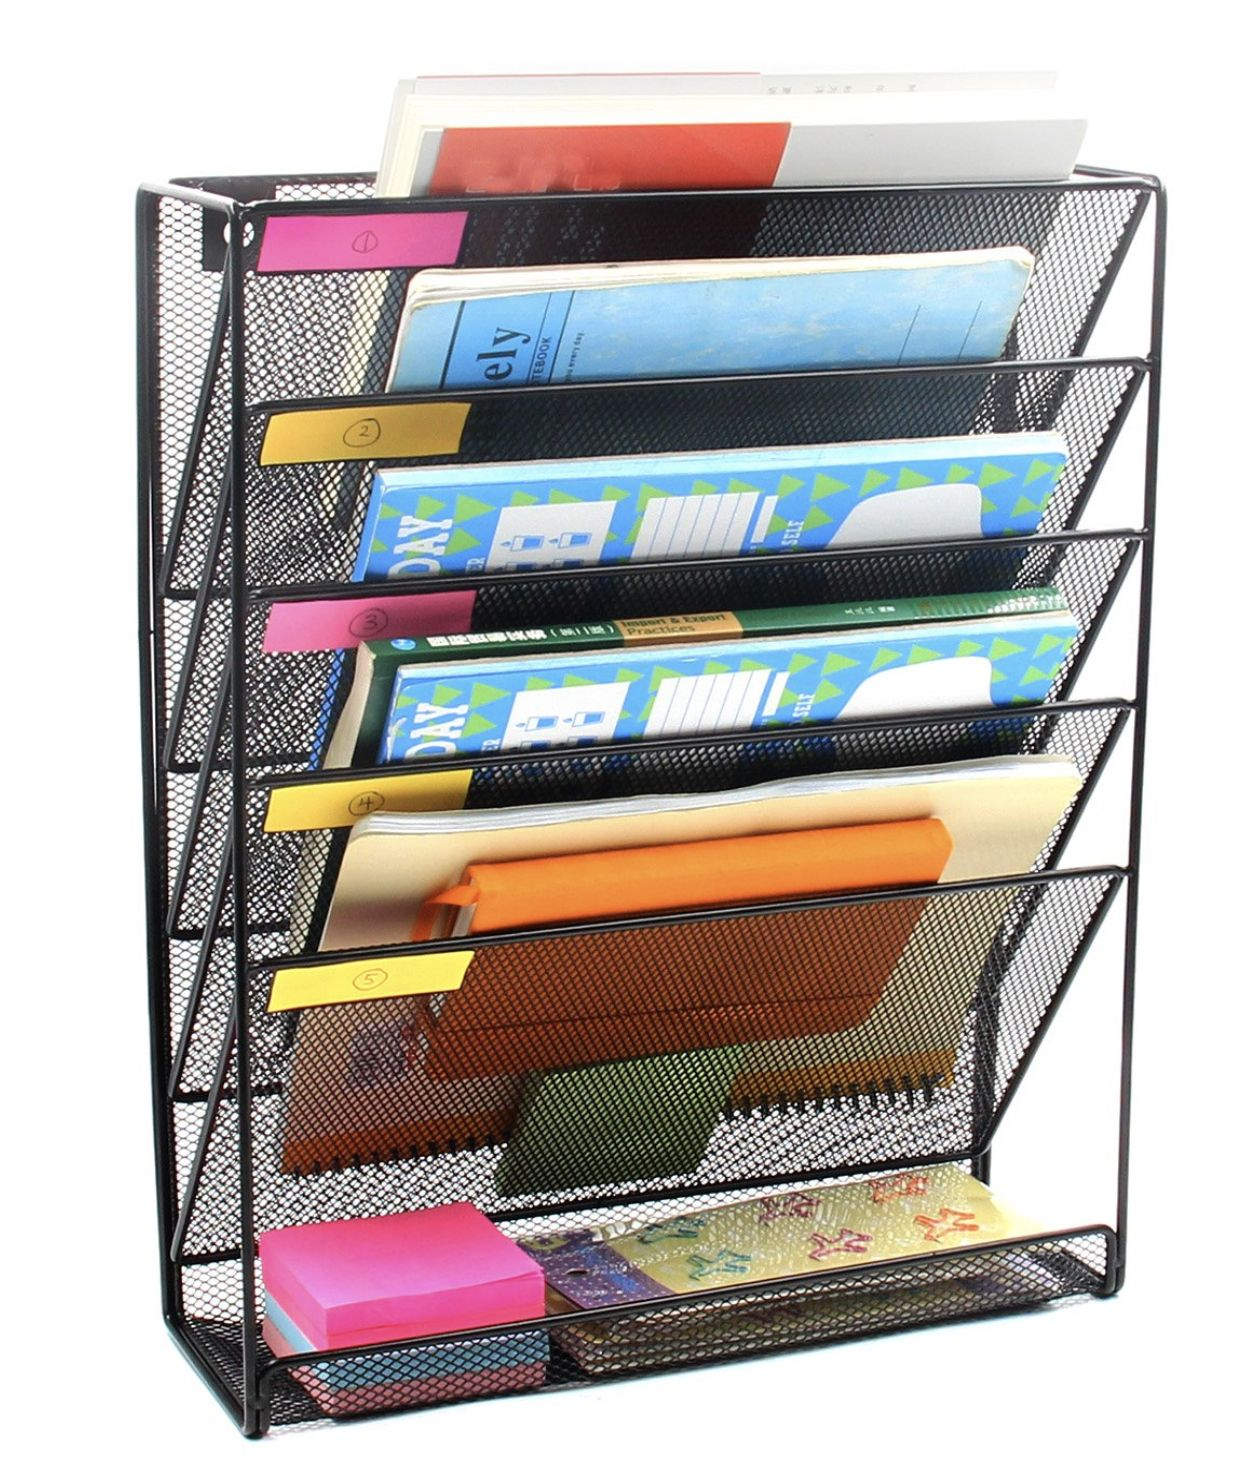 Looking For Ways To Simplify, Streamline And Organize Your